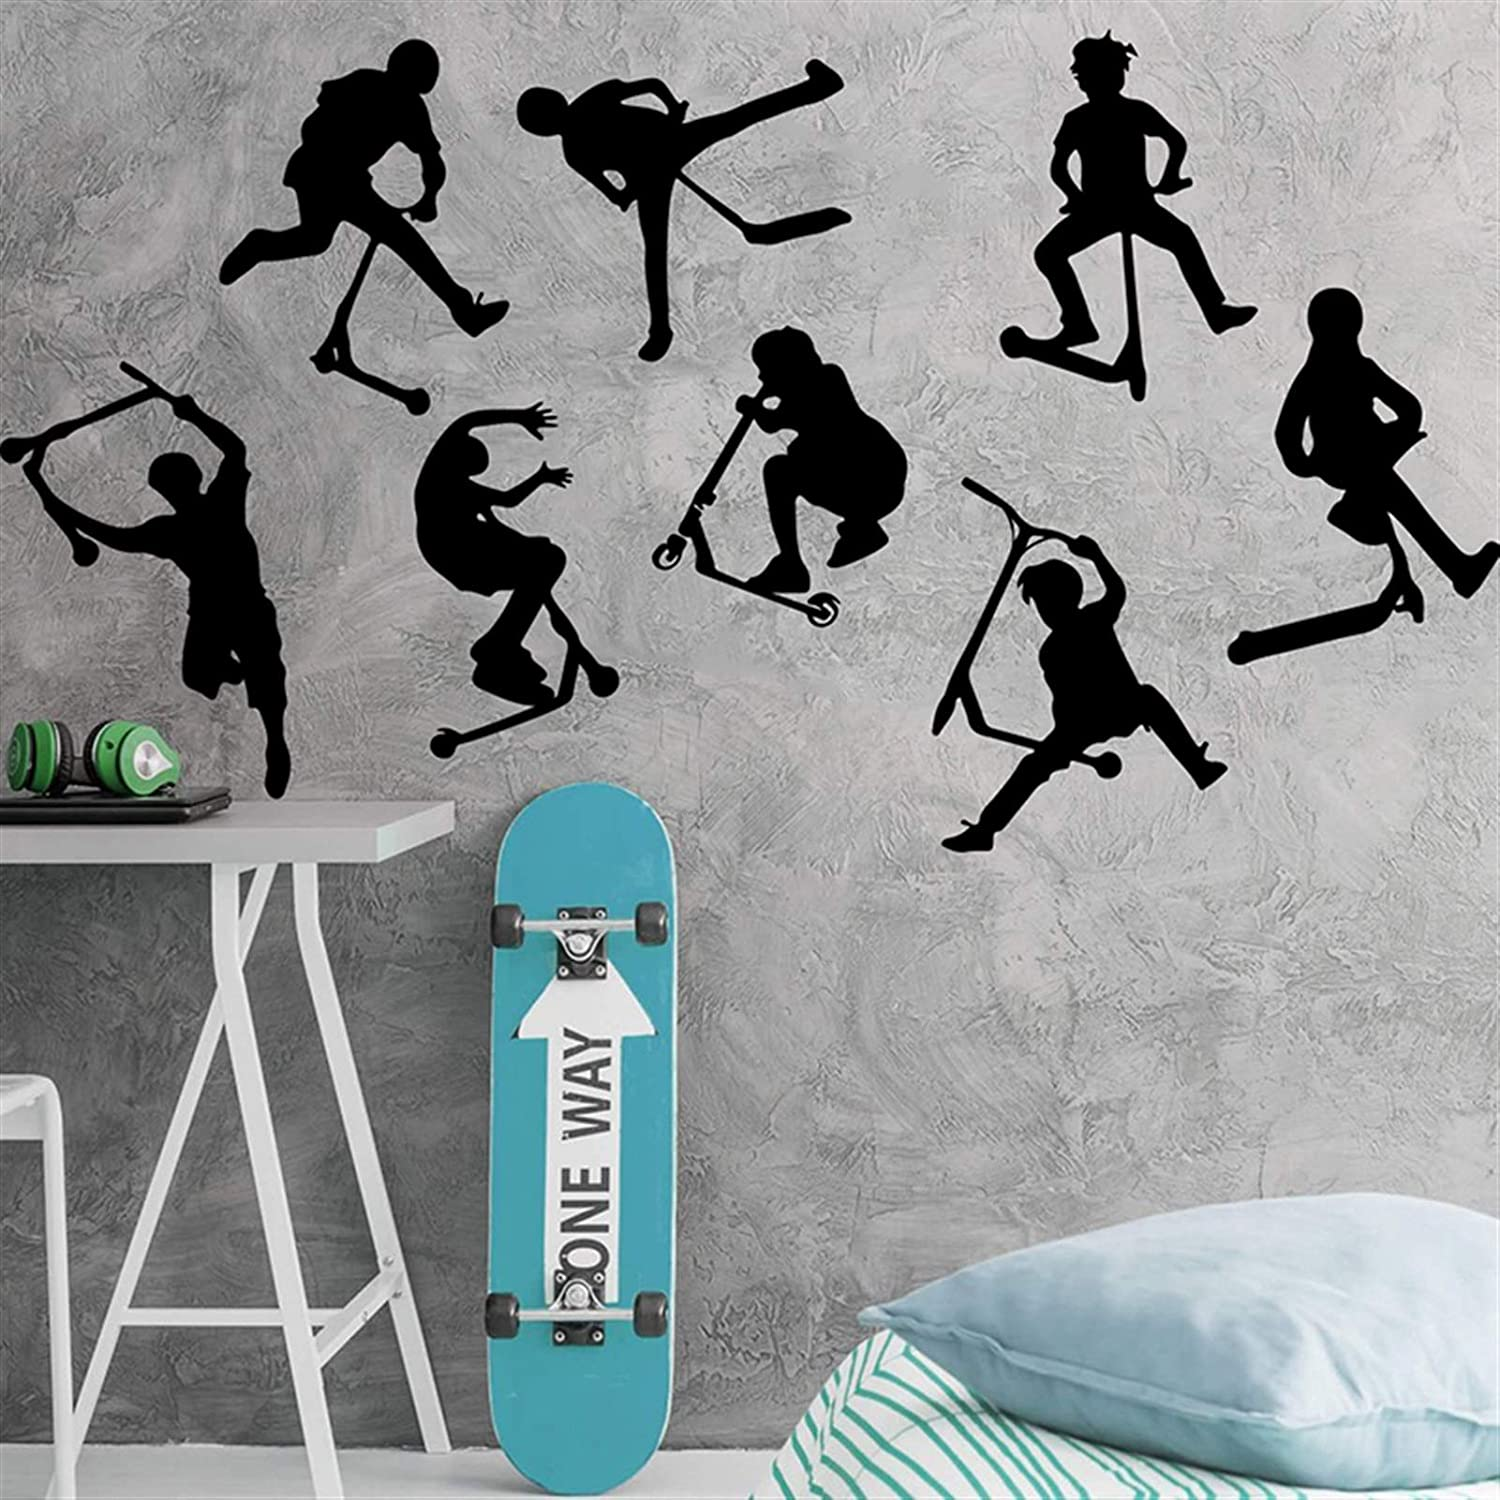 Universal All Kinds of Wall Mural Decorations Outstanding Set Many popular brands 8 Stun